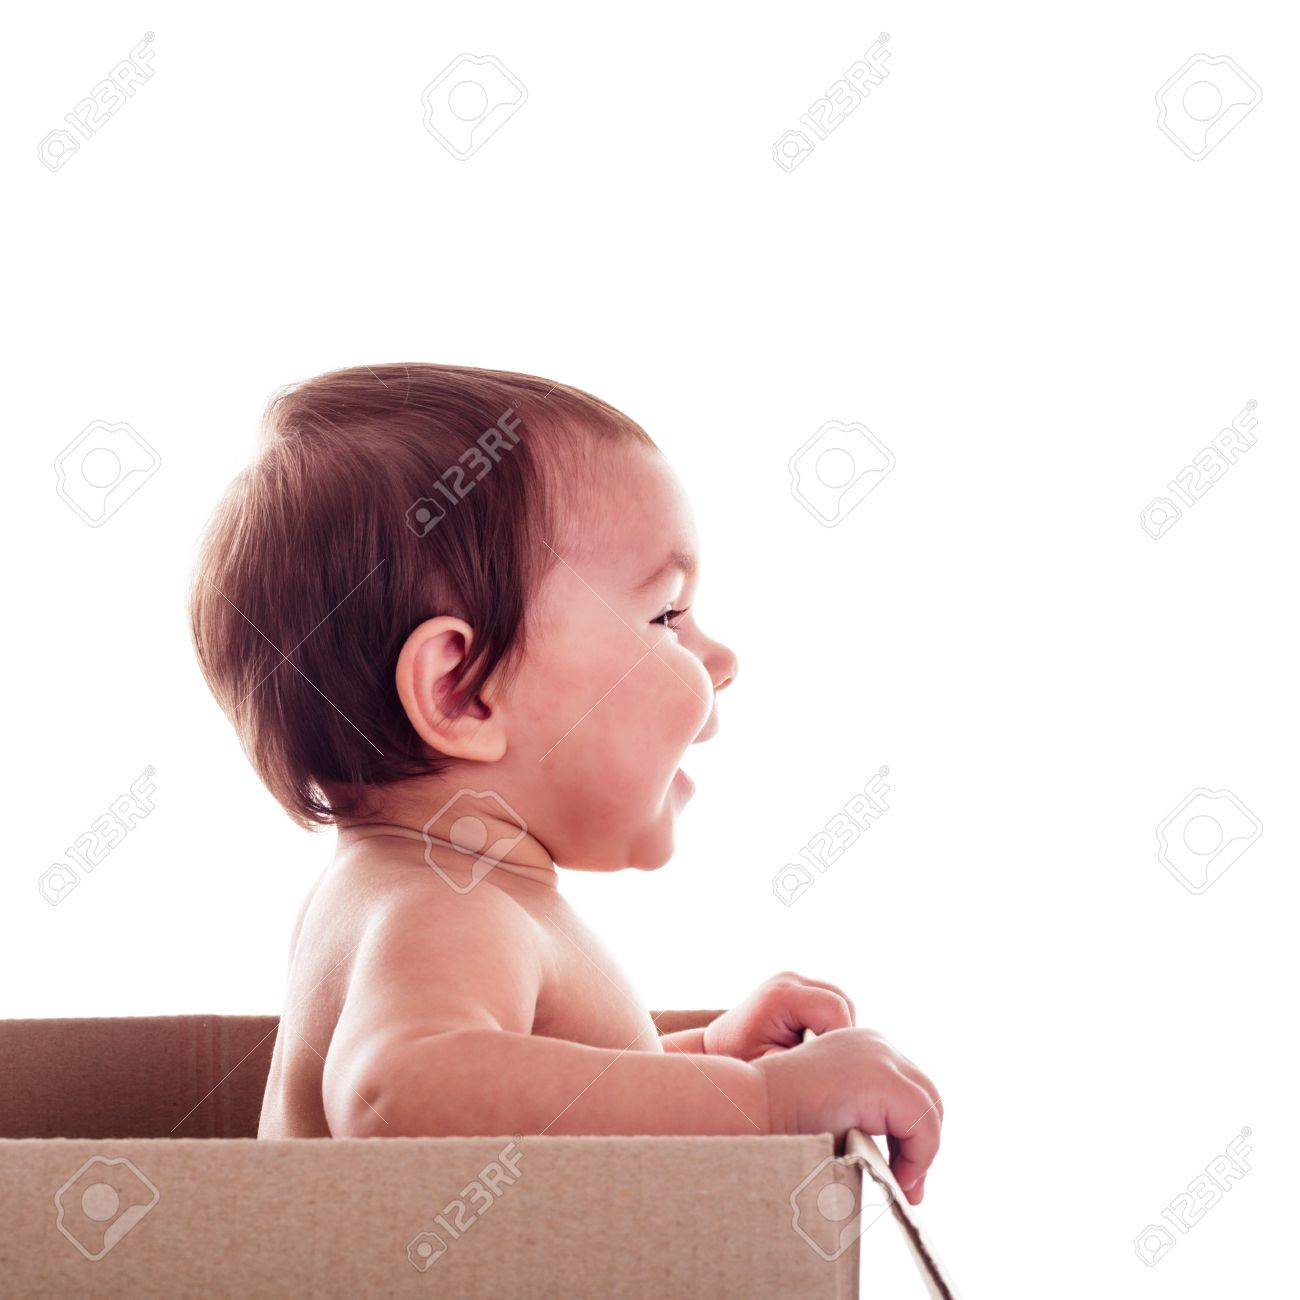 A small child (baby) in  the box isolated, side view Stock Photo - 17287753